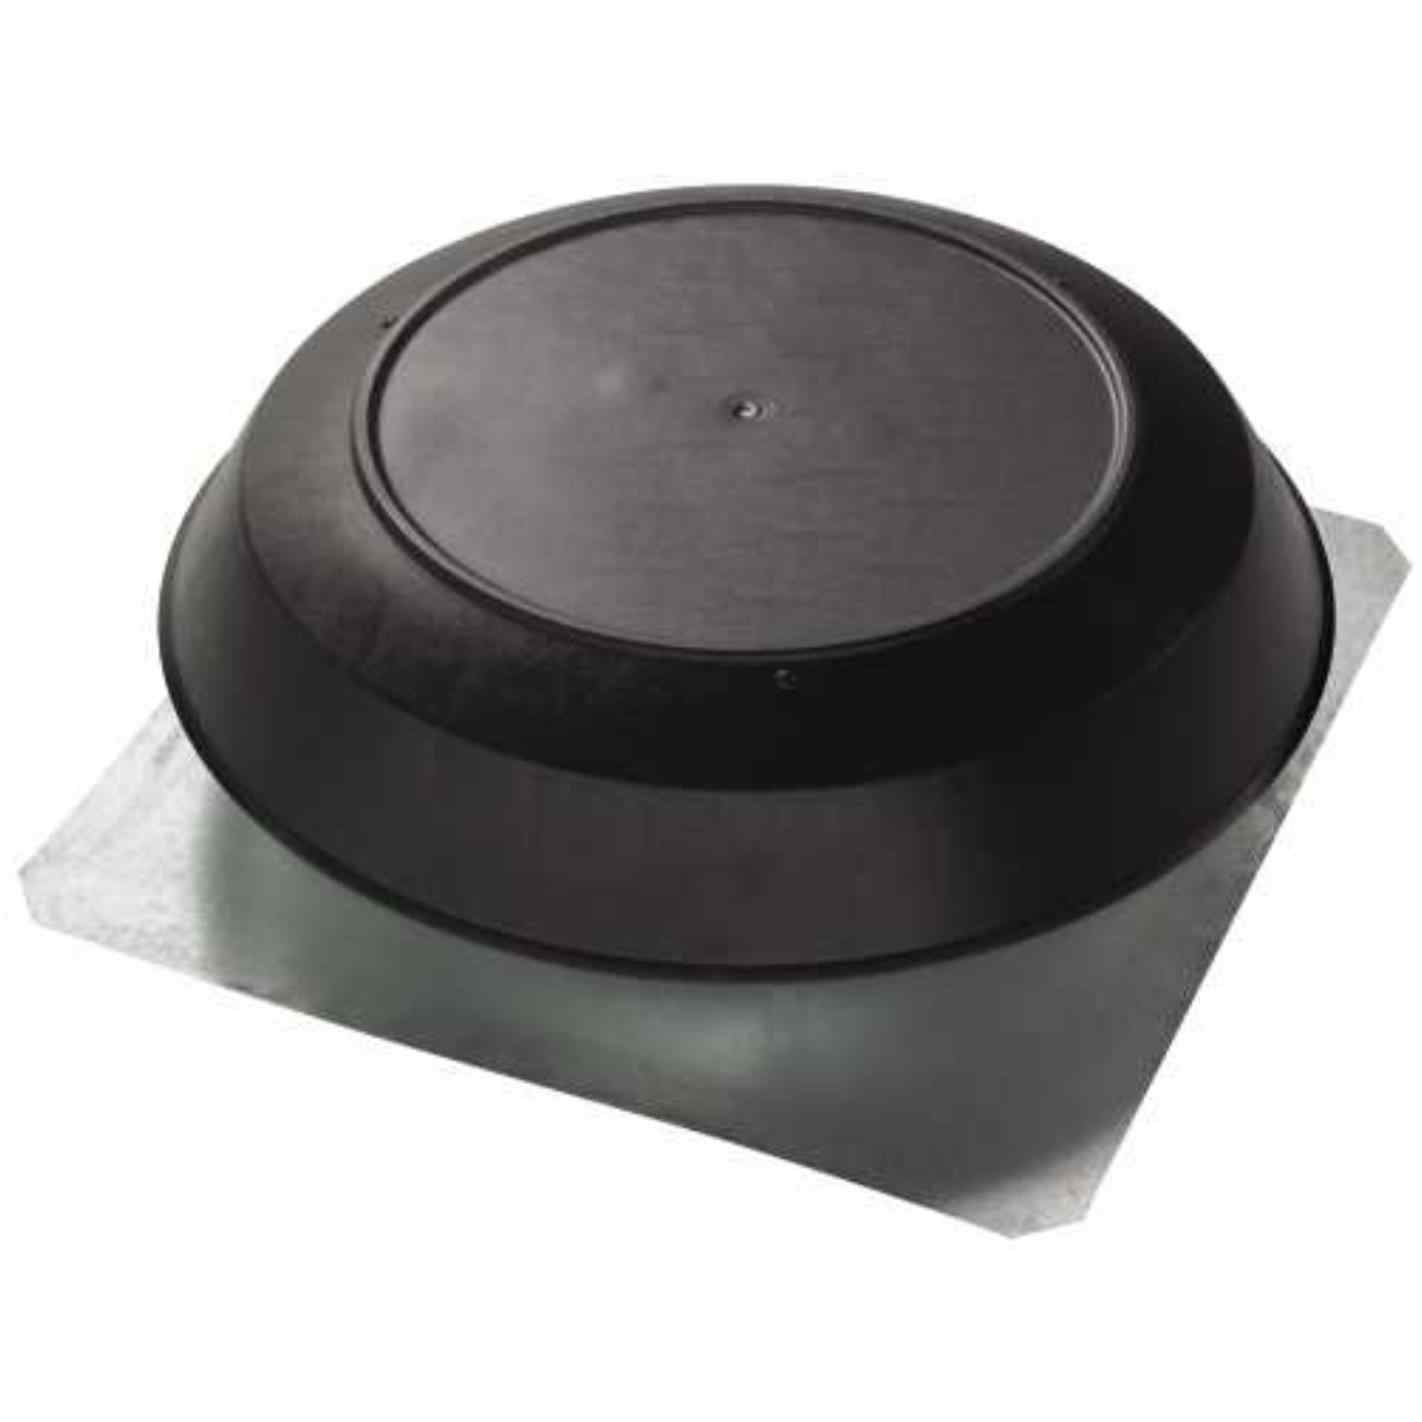 Nutone Attic Fan Thermostat Attic Ideas